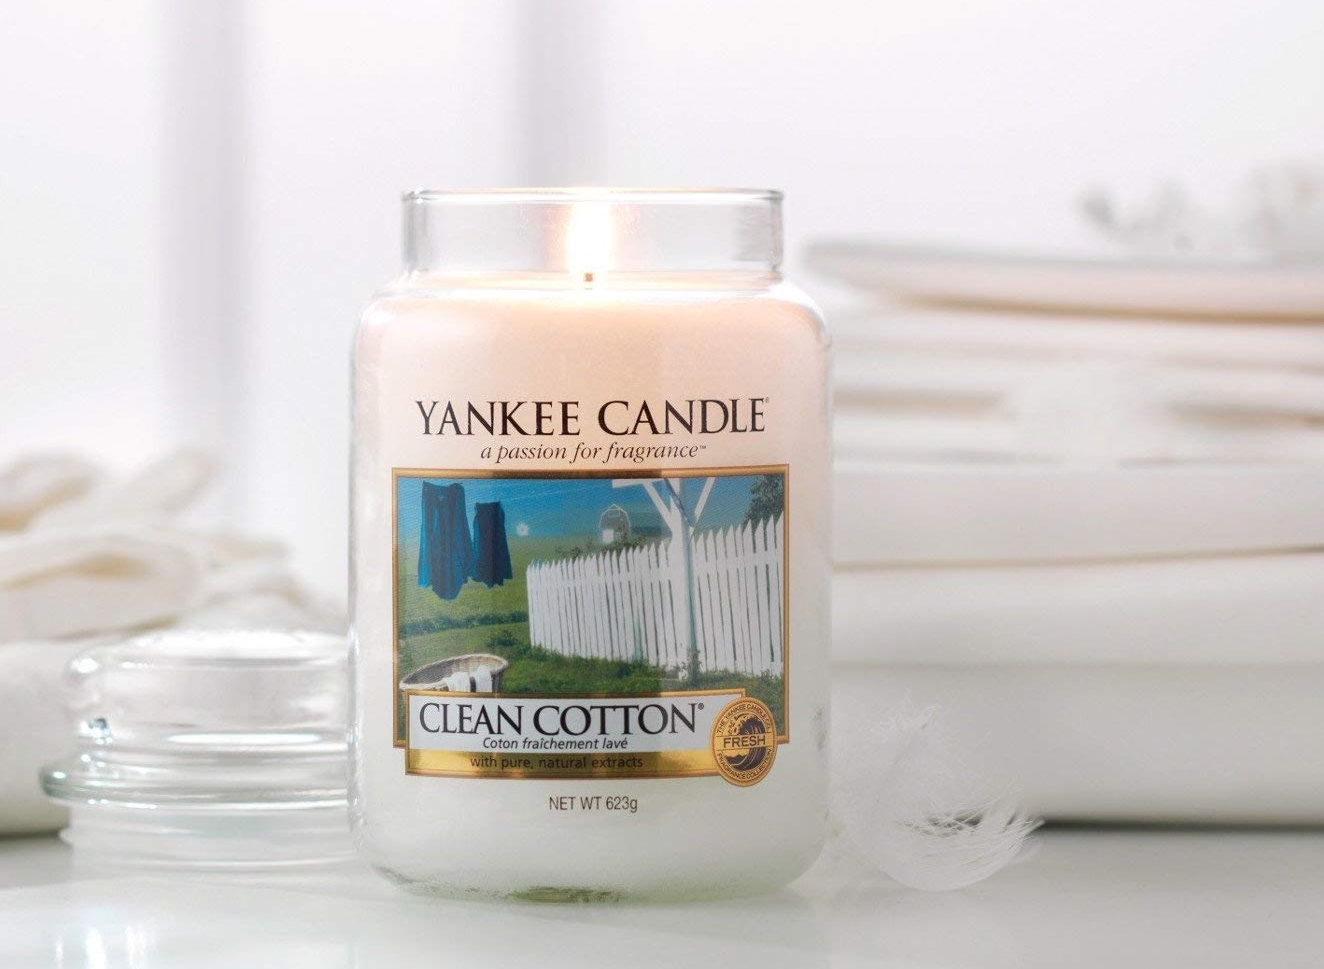 Clean Cotton Yankee Candle